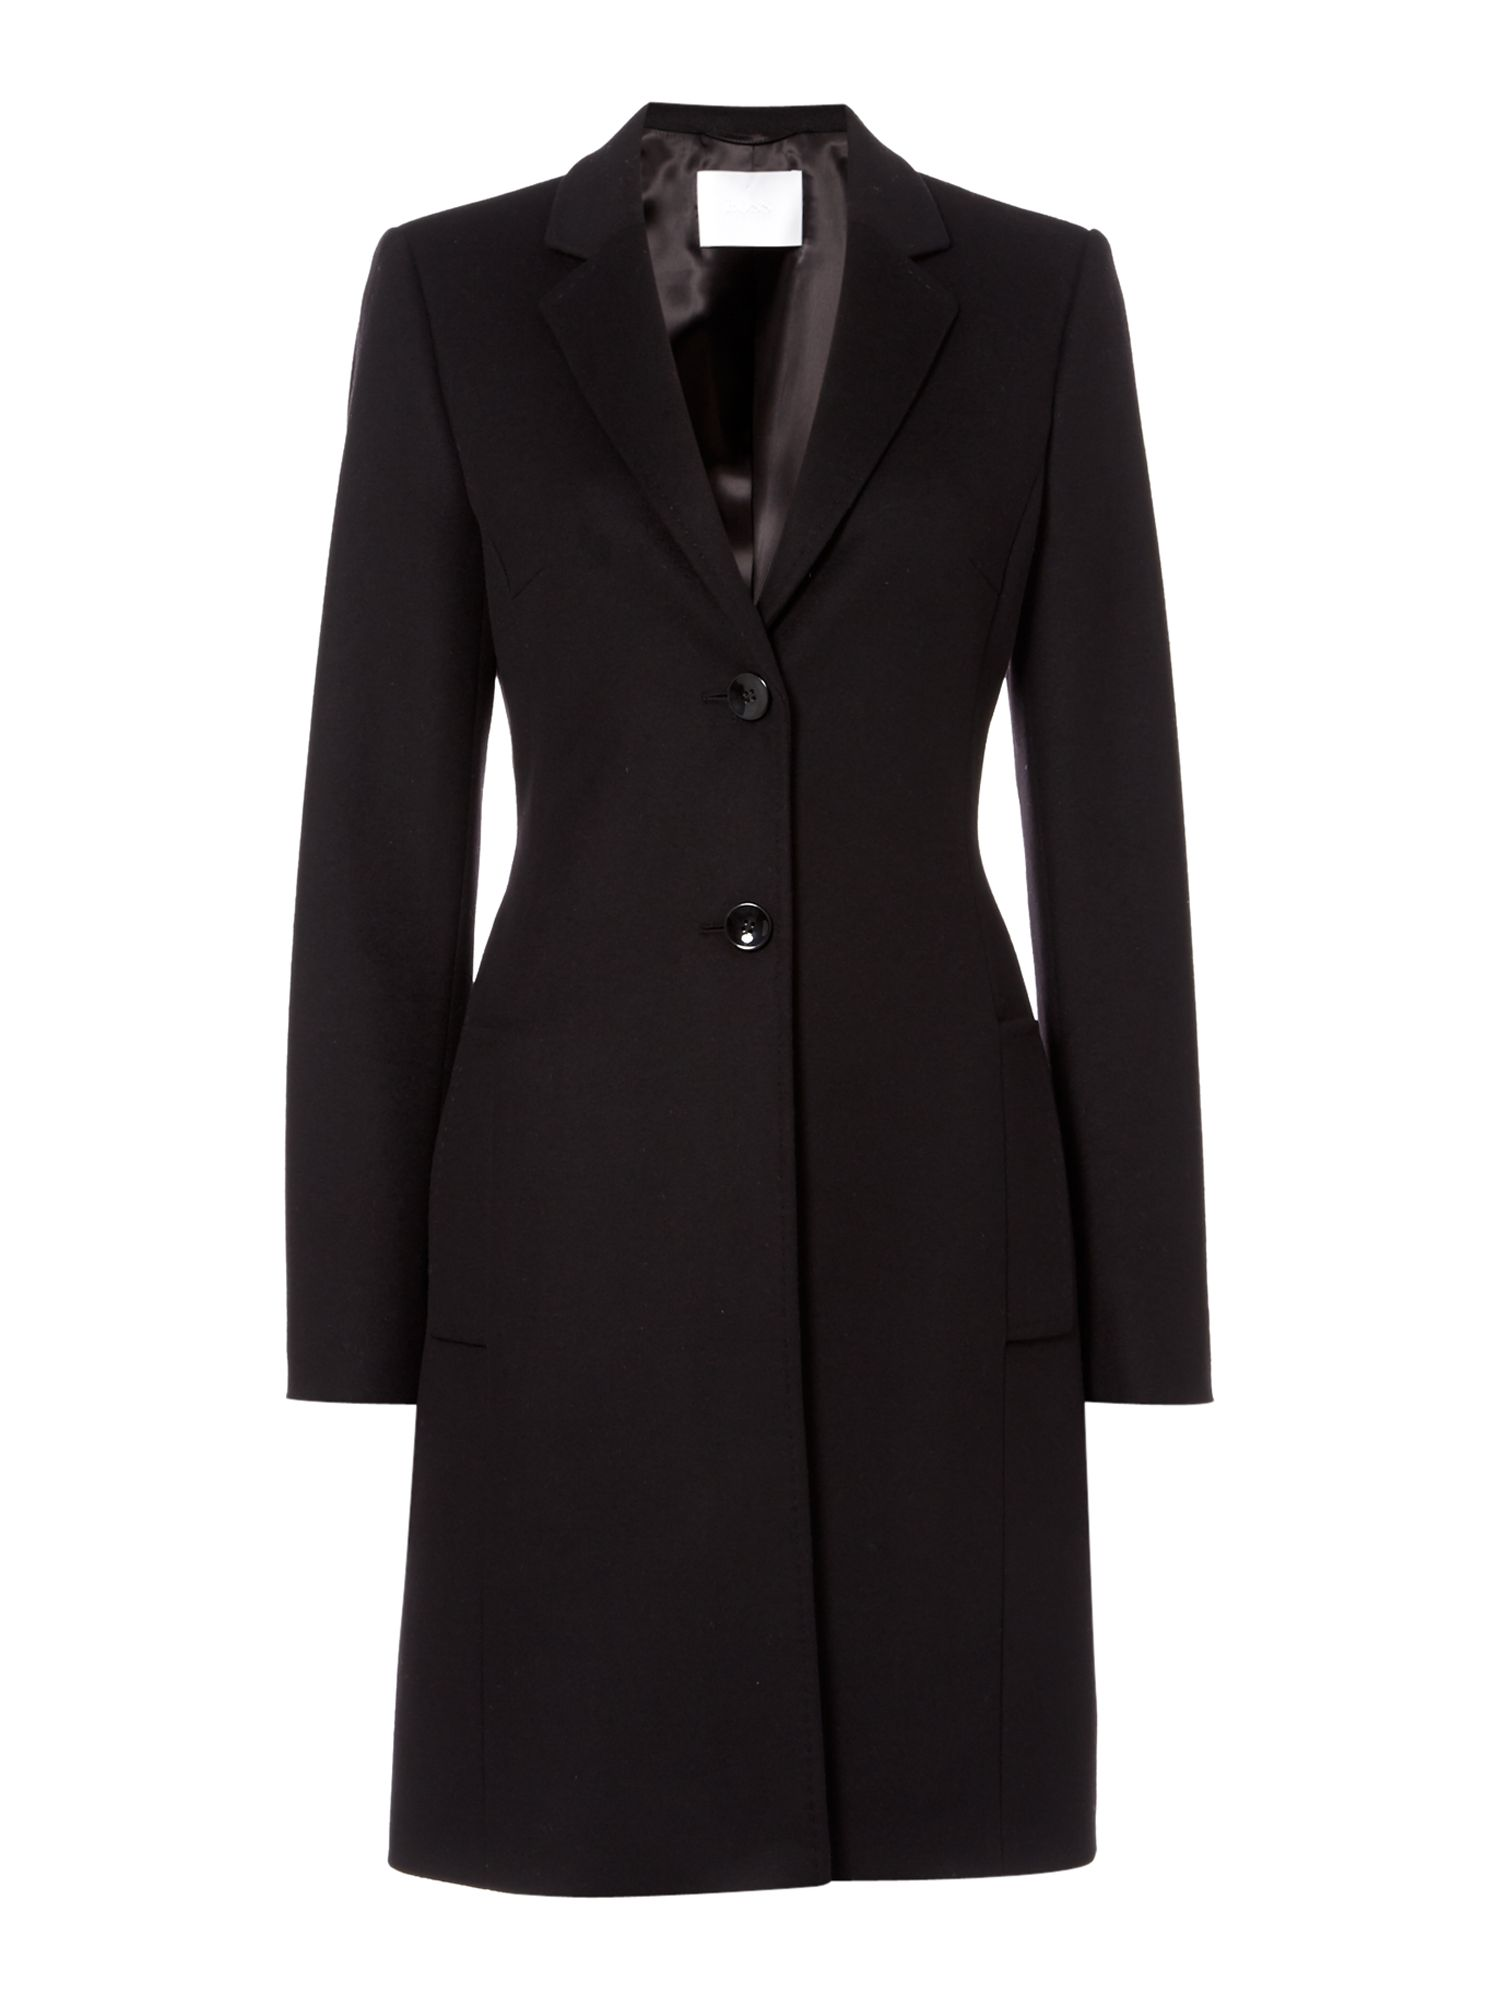 Hugo Boss Cabinela Peacoat, Black